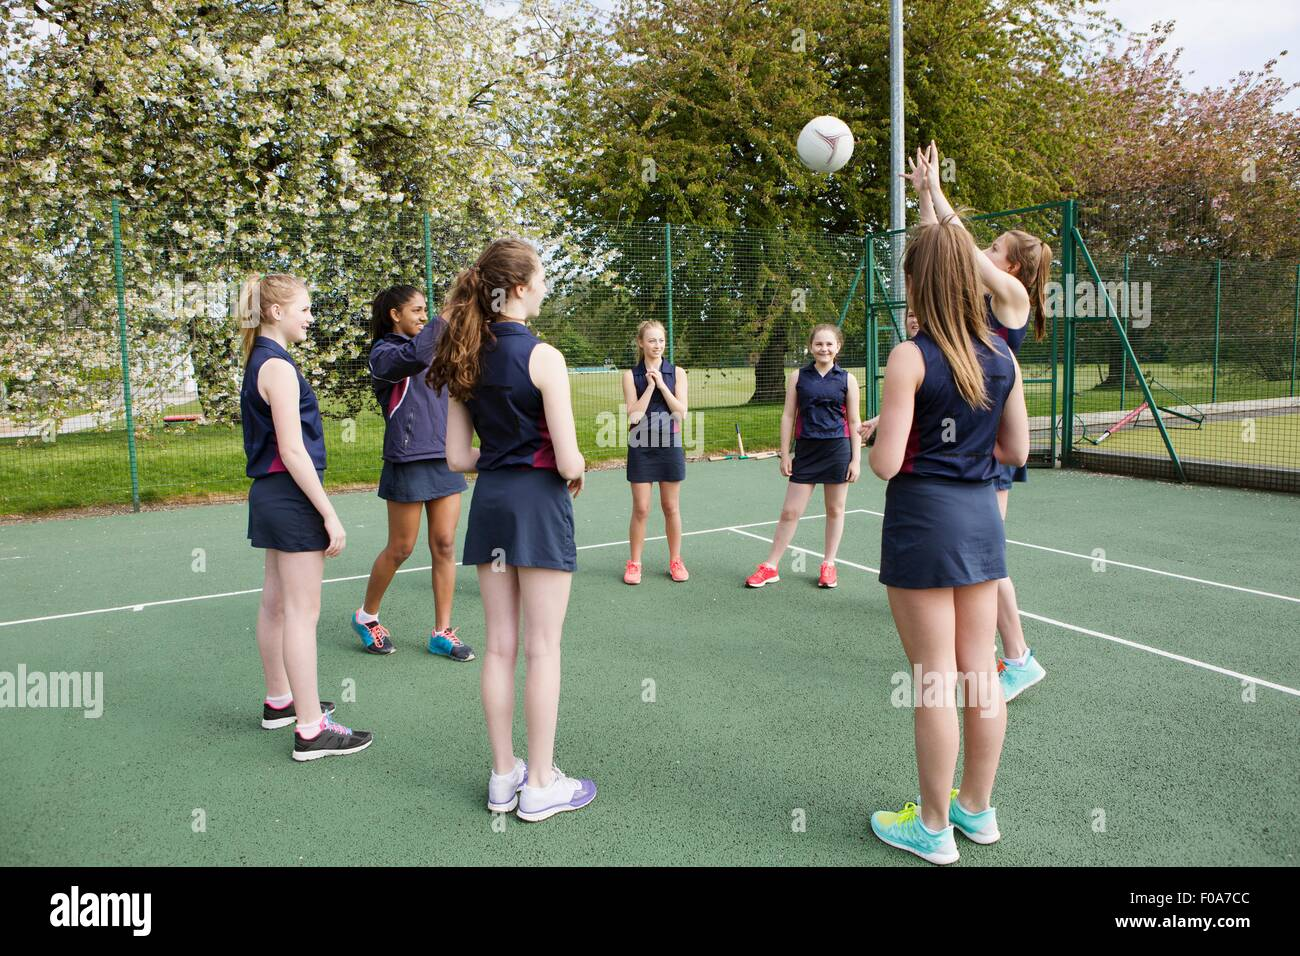 Group of students playing netball in court - Stock Image